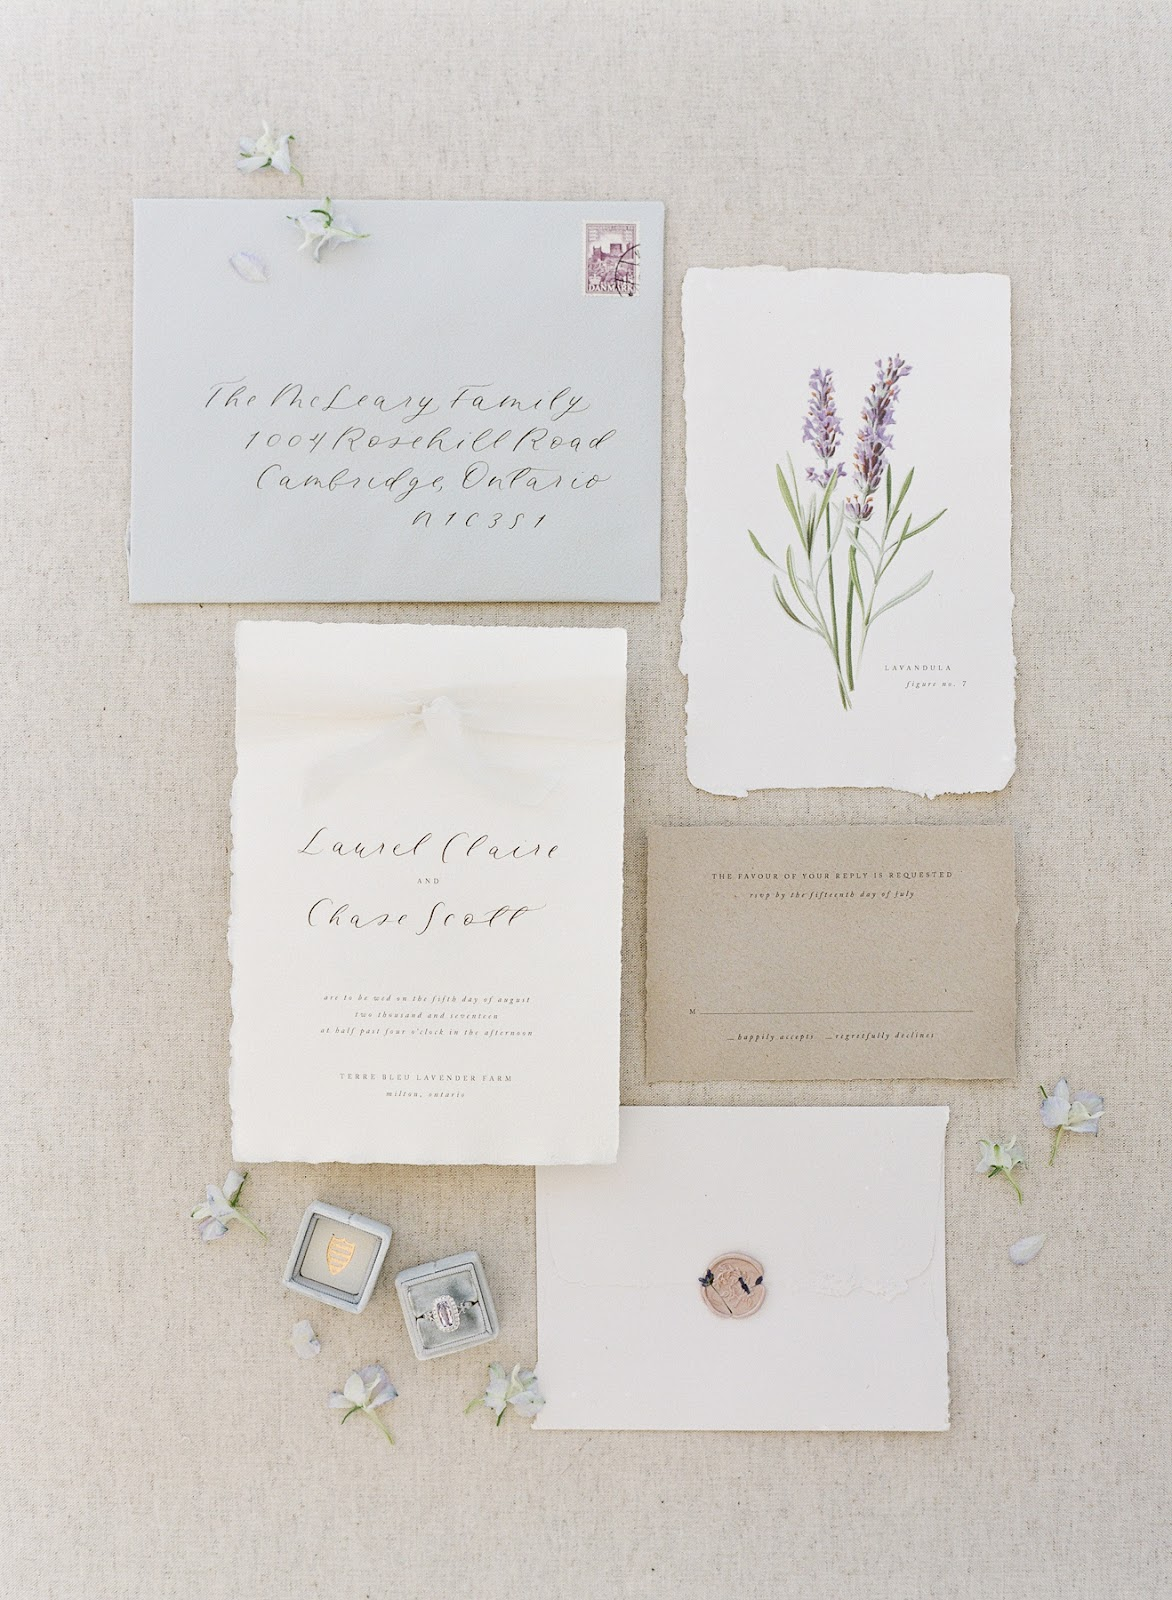 artiese-lavender-wedding-inspiration-000061910005.jpg